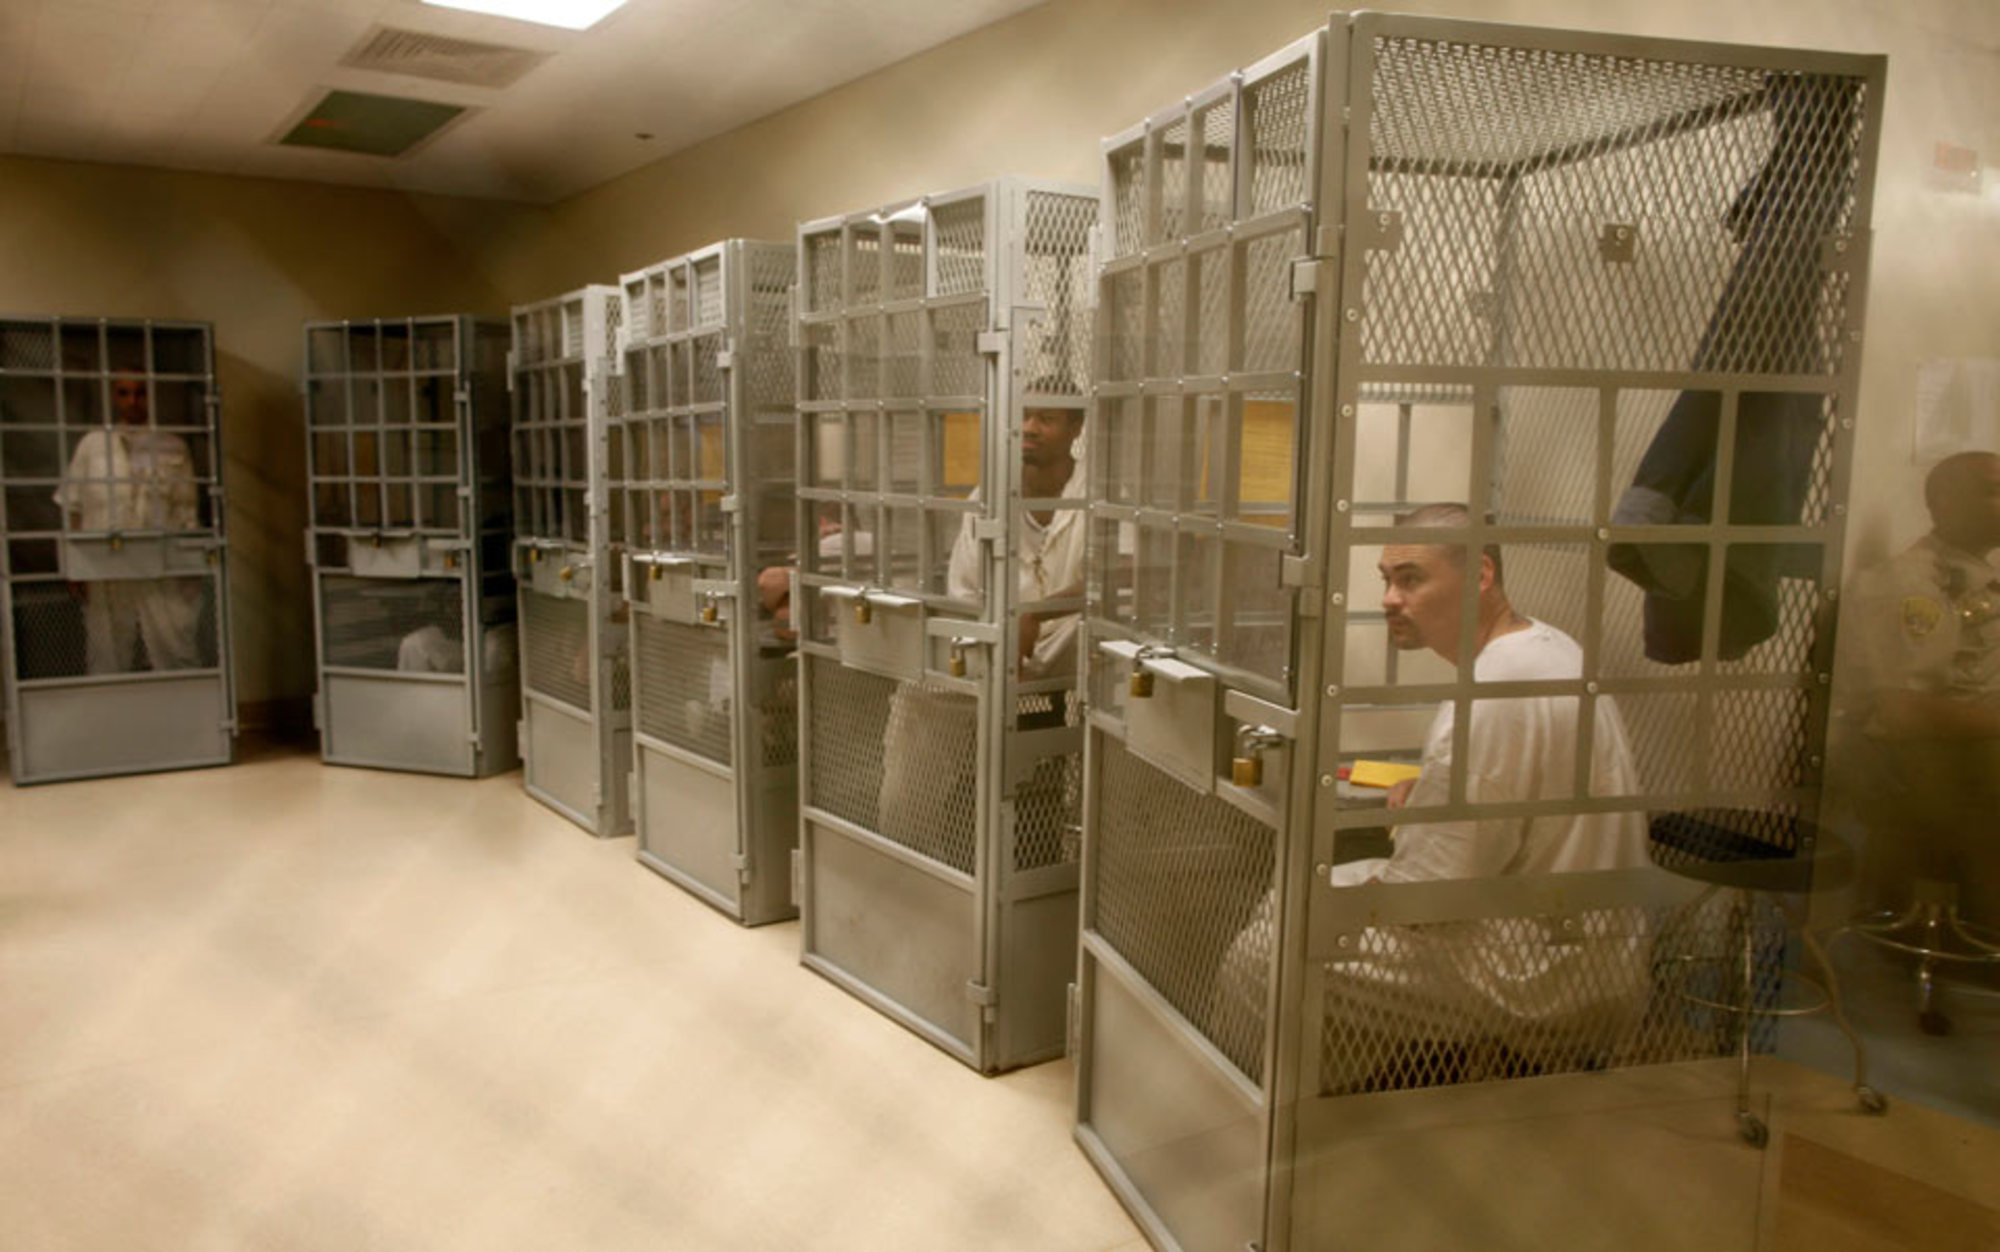 Do we need prisons essay